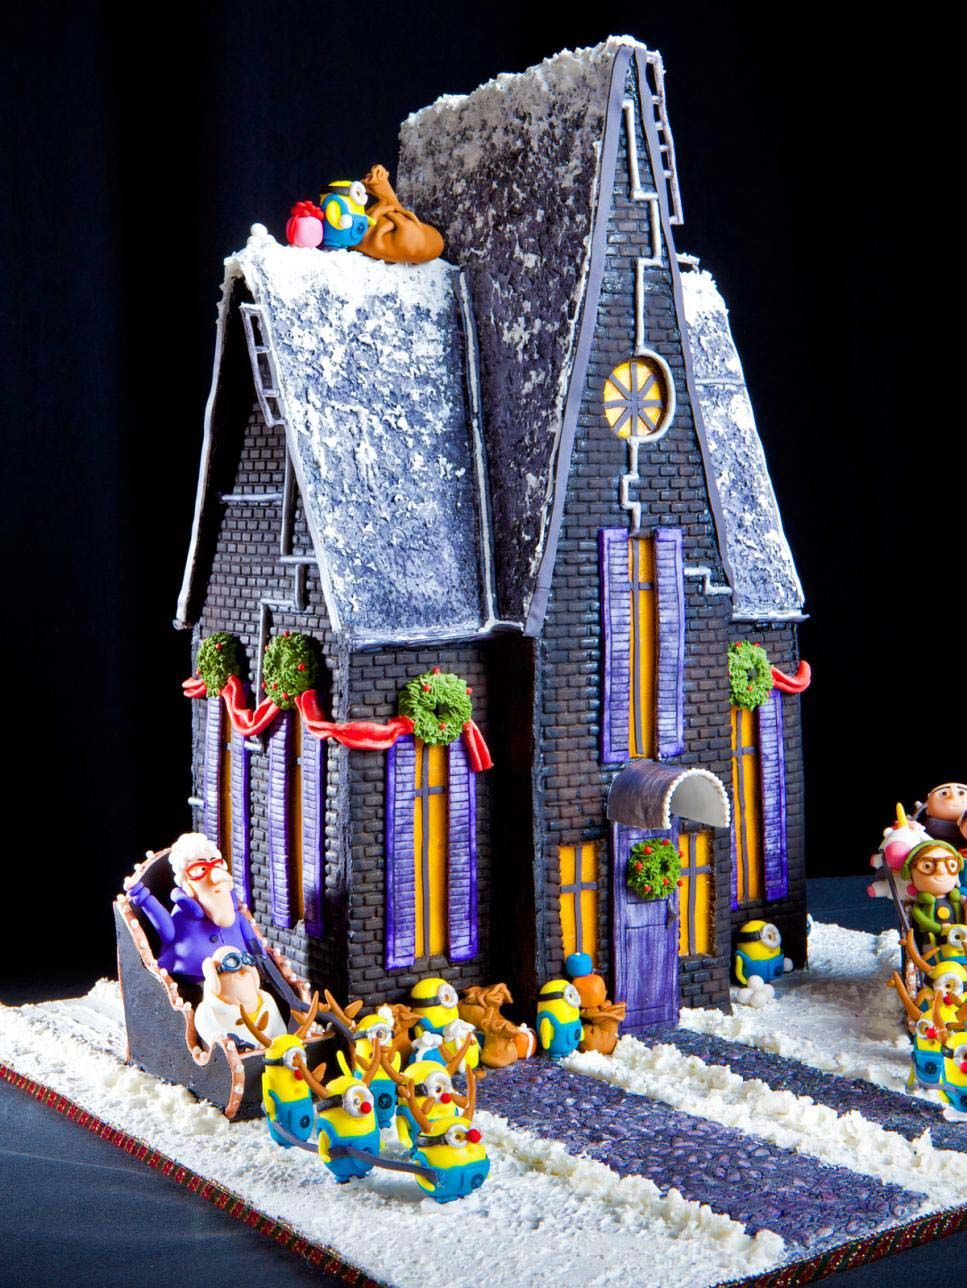 Pin by James Rose on Custom Christmas Gingerbread houses